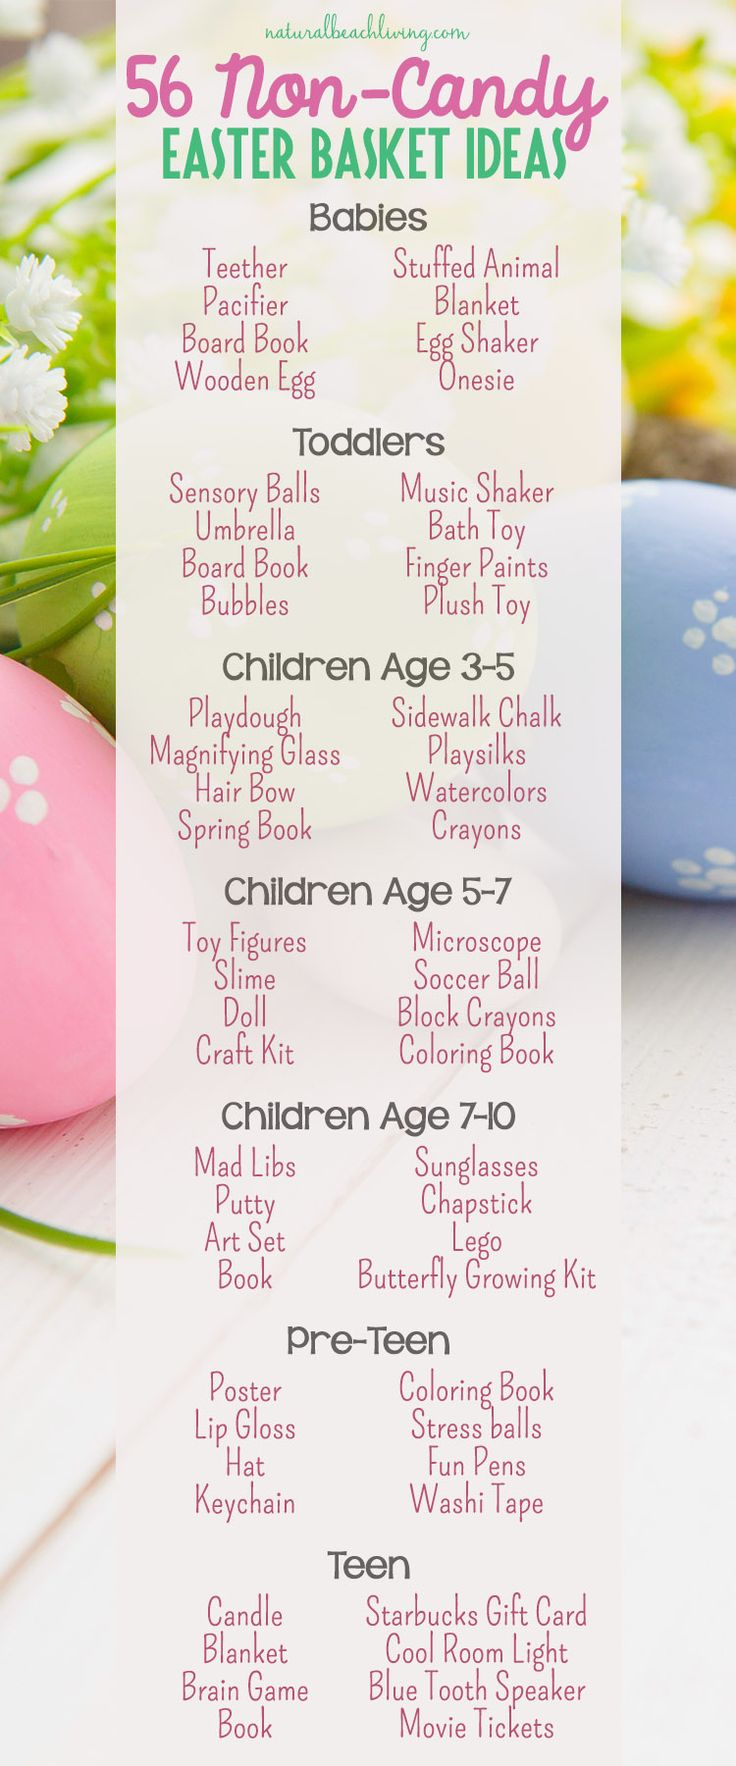 56 Non-Candy Easter Basket Ideas for kids, Budget friendly Easter Baskets, Easter for toddlers, Easter basket ideas for babies, Teen gifts, Non candy ideas #Easter #Easterideas #Easterbasket